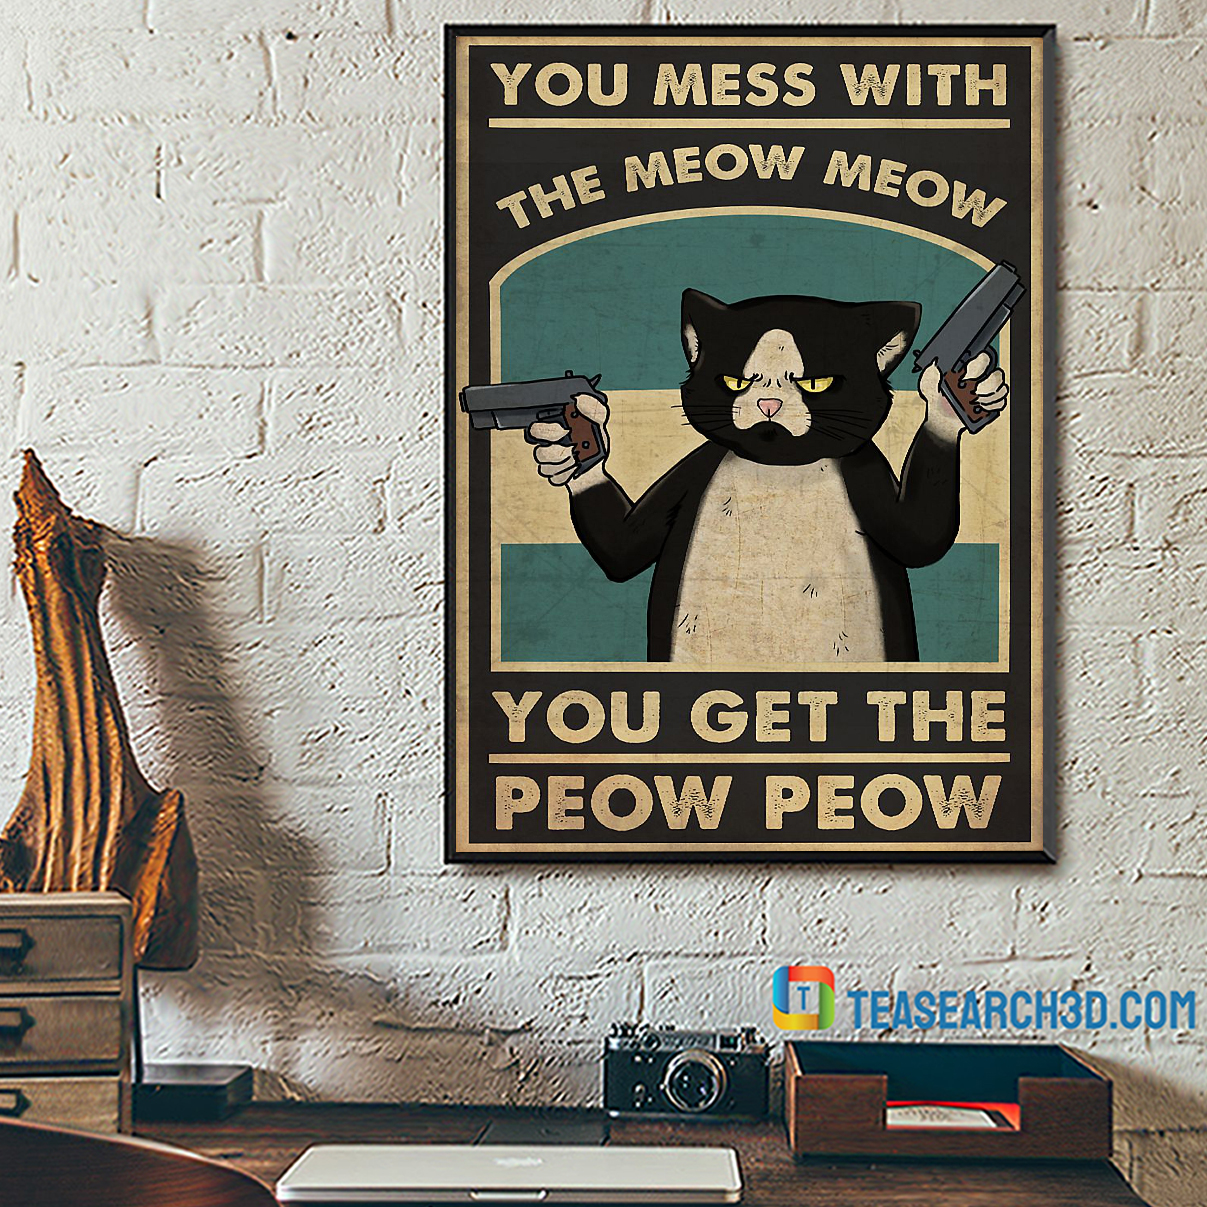 You mess with the meow meow you get the peow peow poster A1